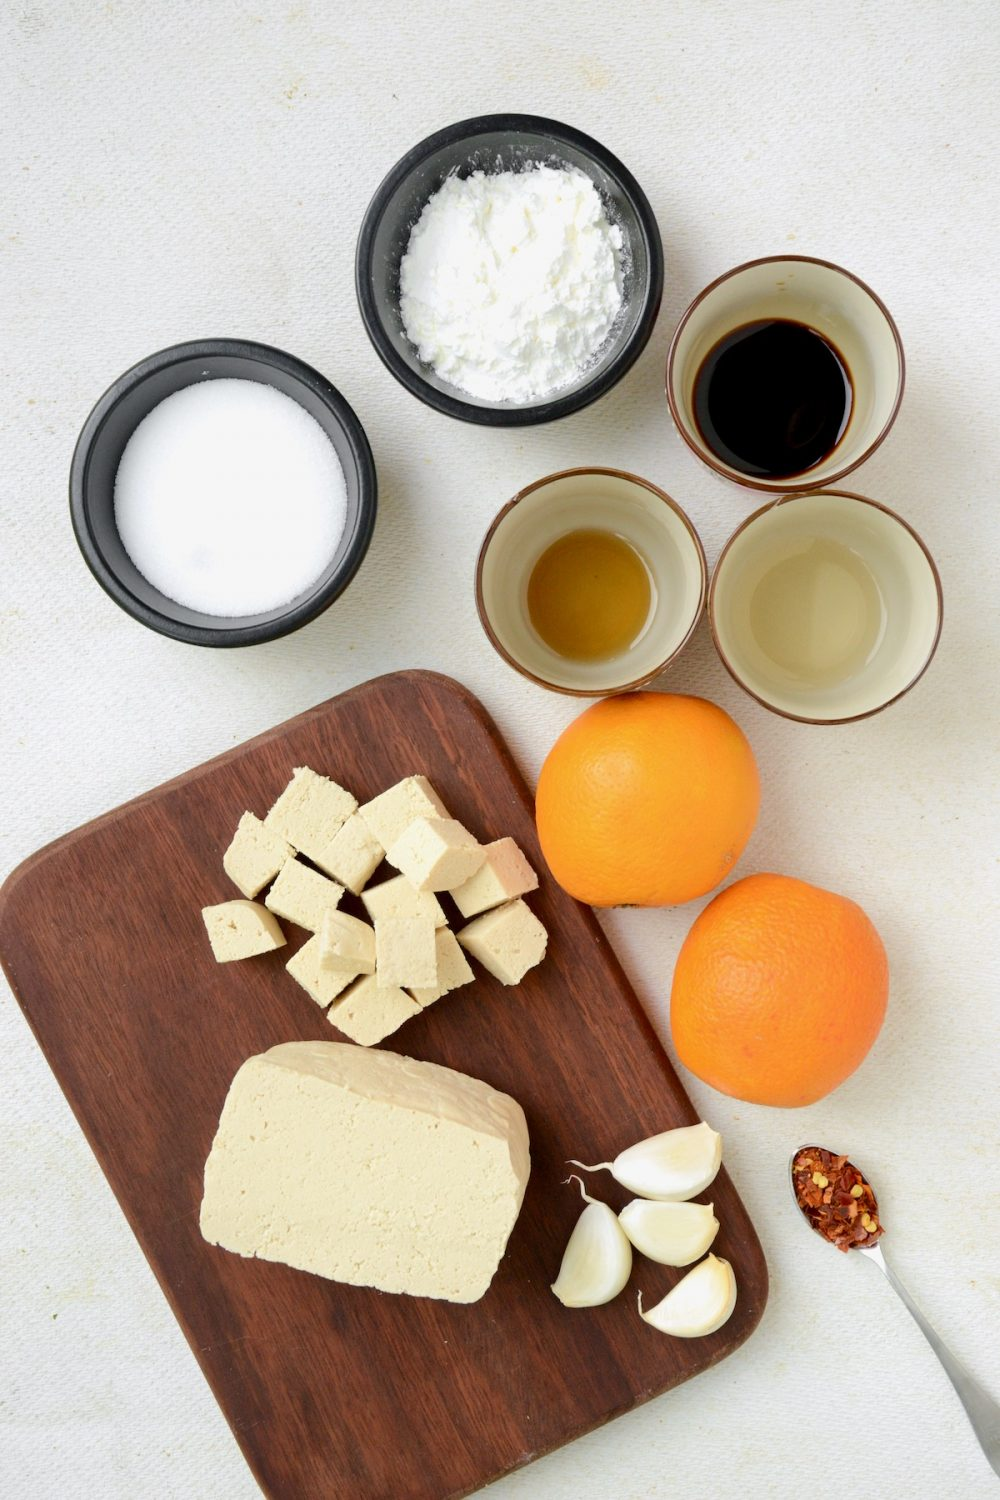 The ingredients that you will need if you want to make this recipe for orange tofu: A block of firm tofu, two medium oranges, garlic, sesame oil, soy sauce, rice vinegar, sugar and cornstarch. Chili flakes are an optional addition.